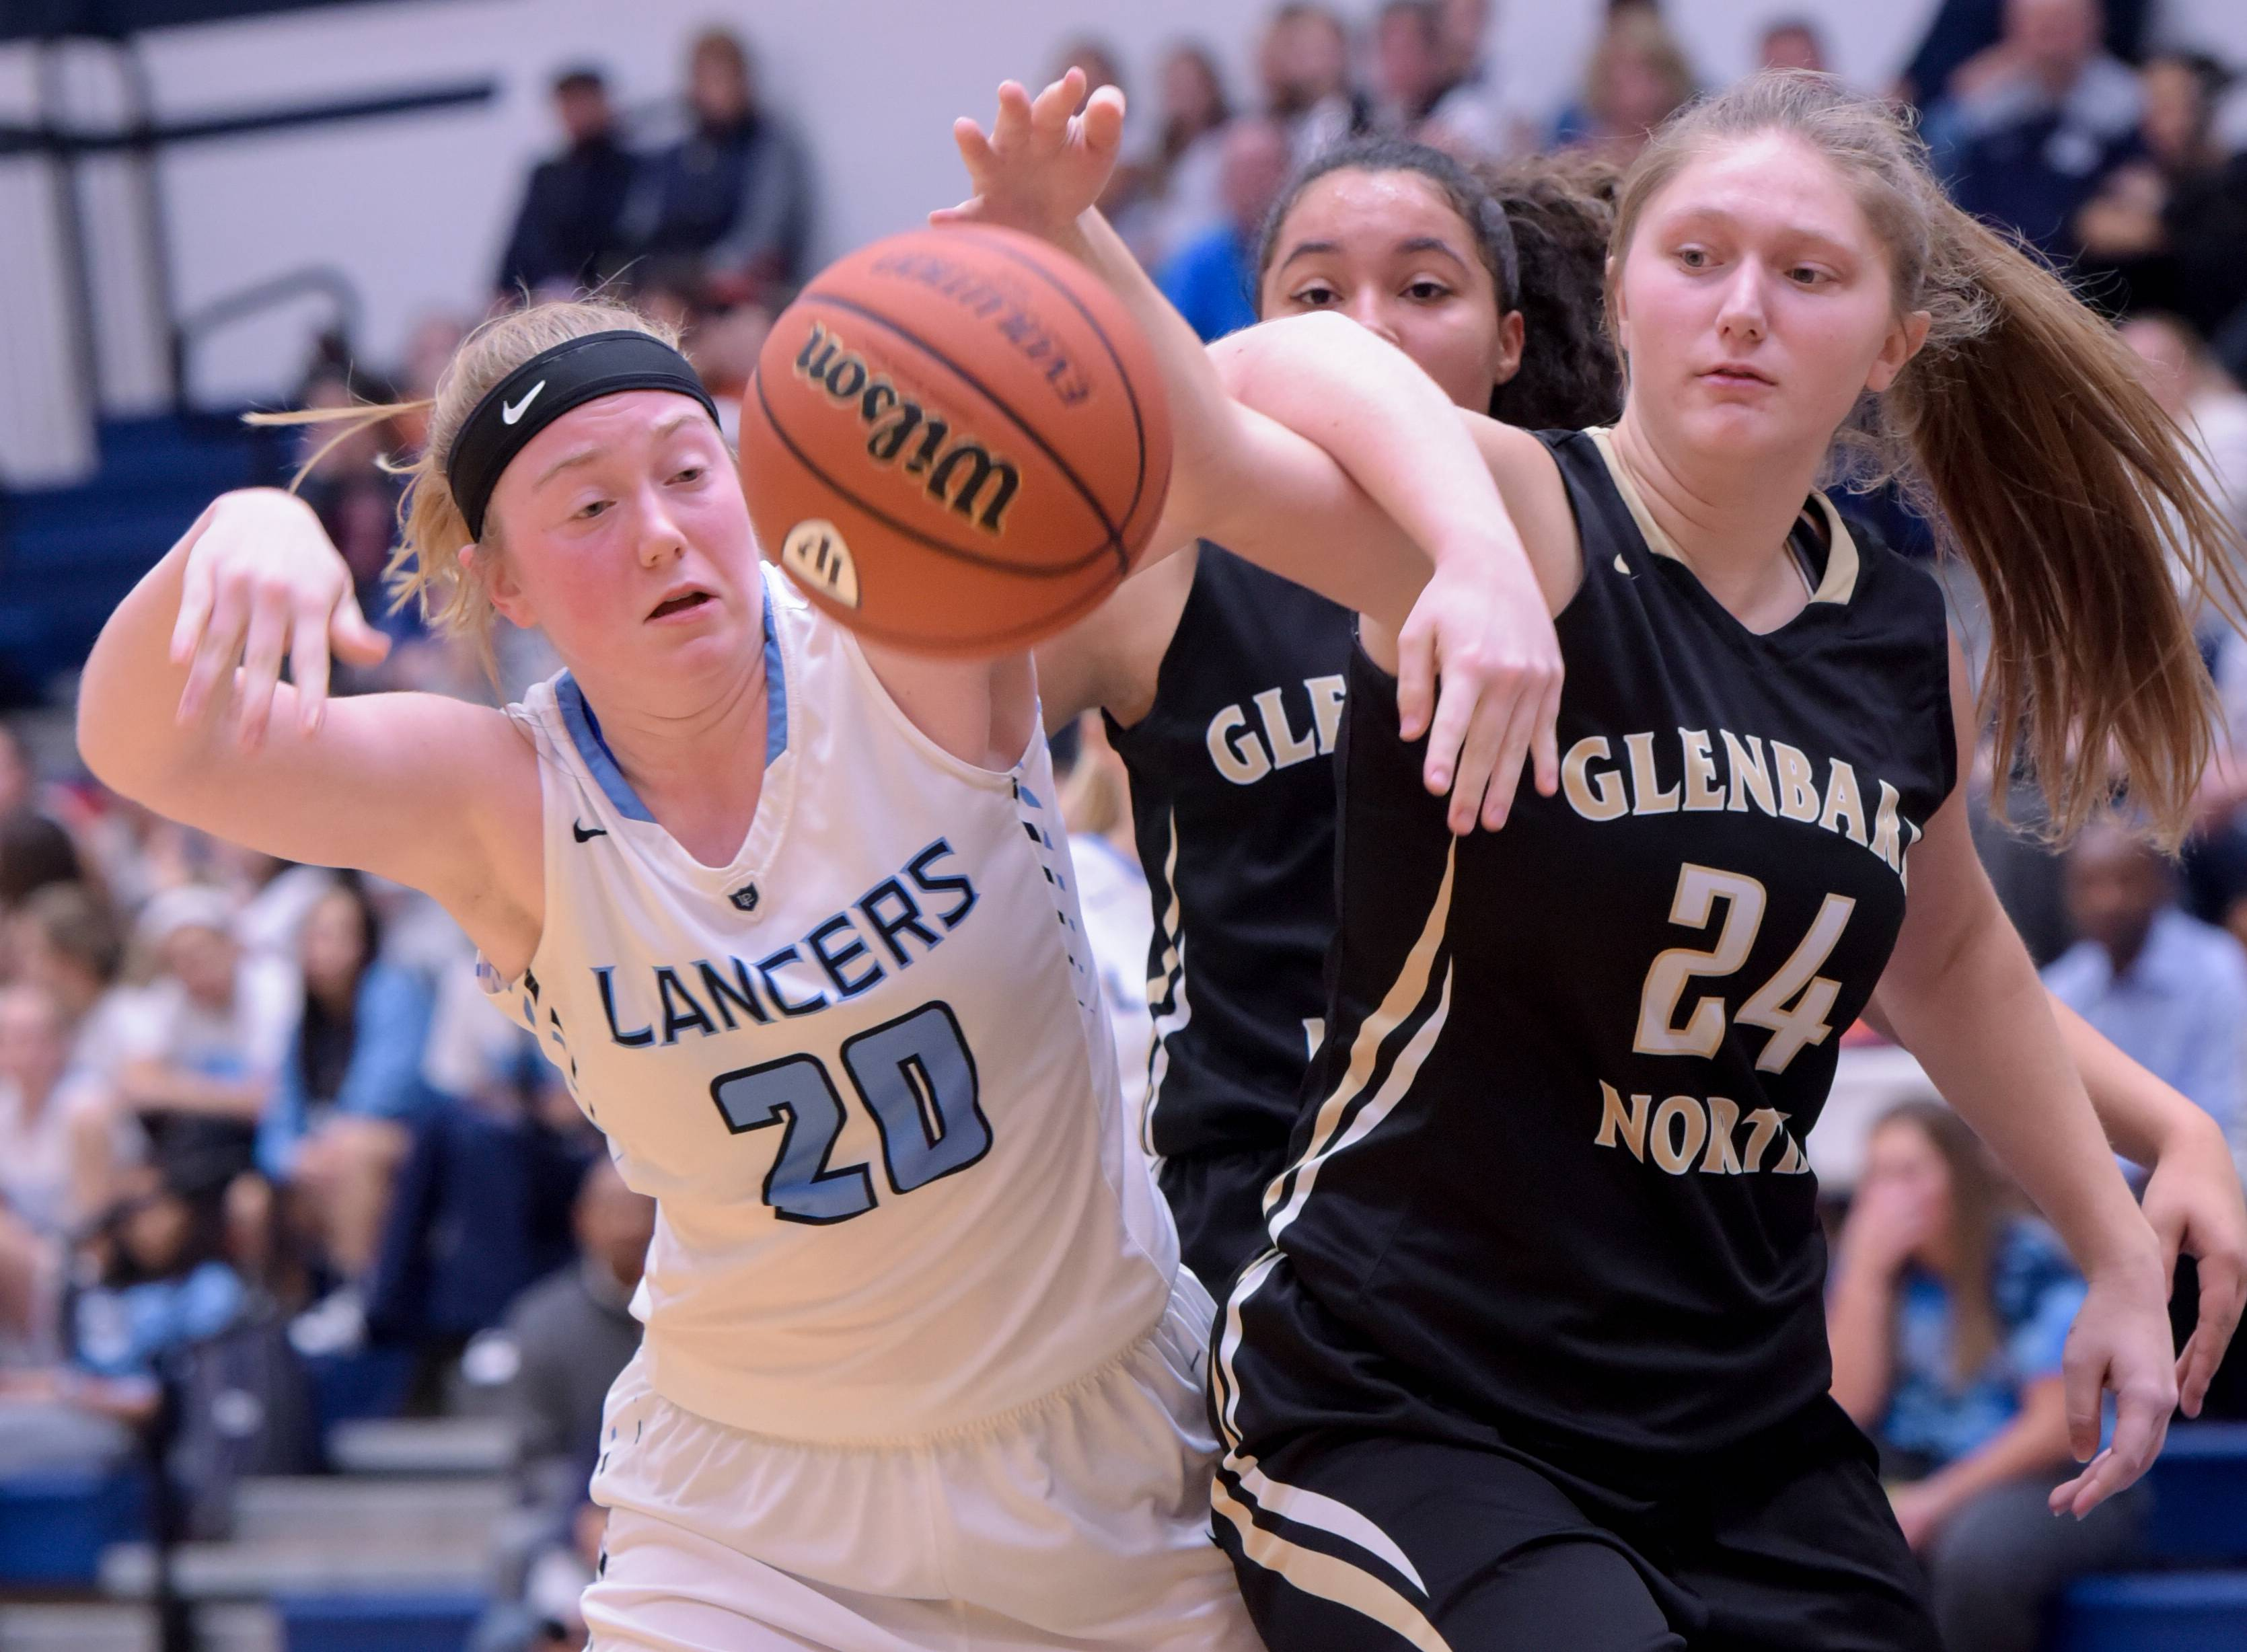 Lake Park's Daina Riser (20) and Glenbard North's Karissa Chalus (24) get tangled up as they go after the ball during varsity girls basketball game in Roselle on December 18, 2017.